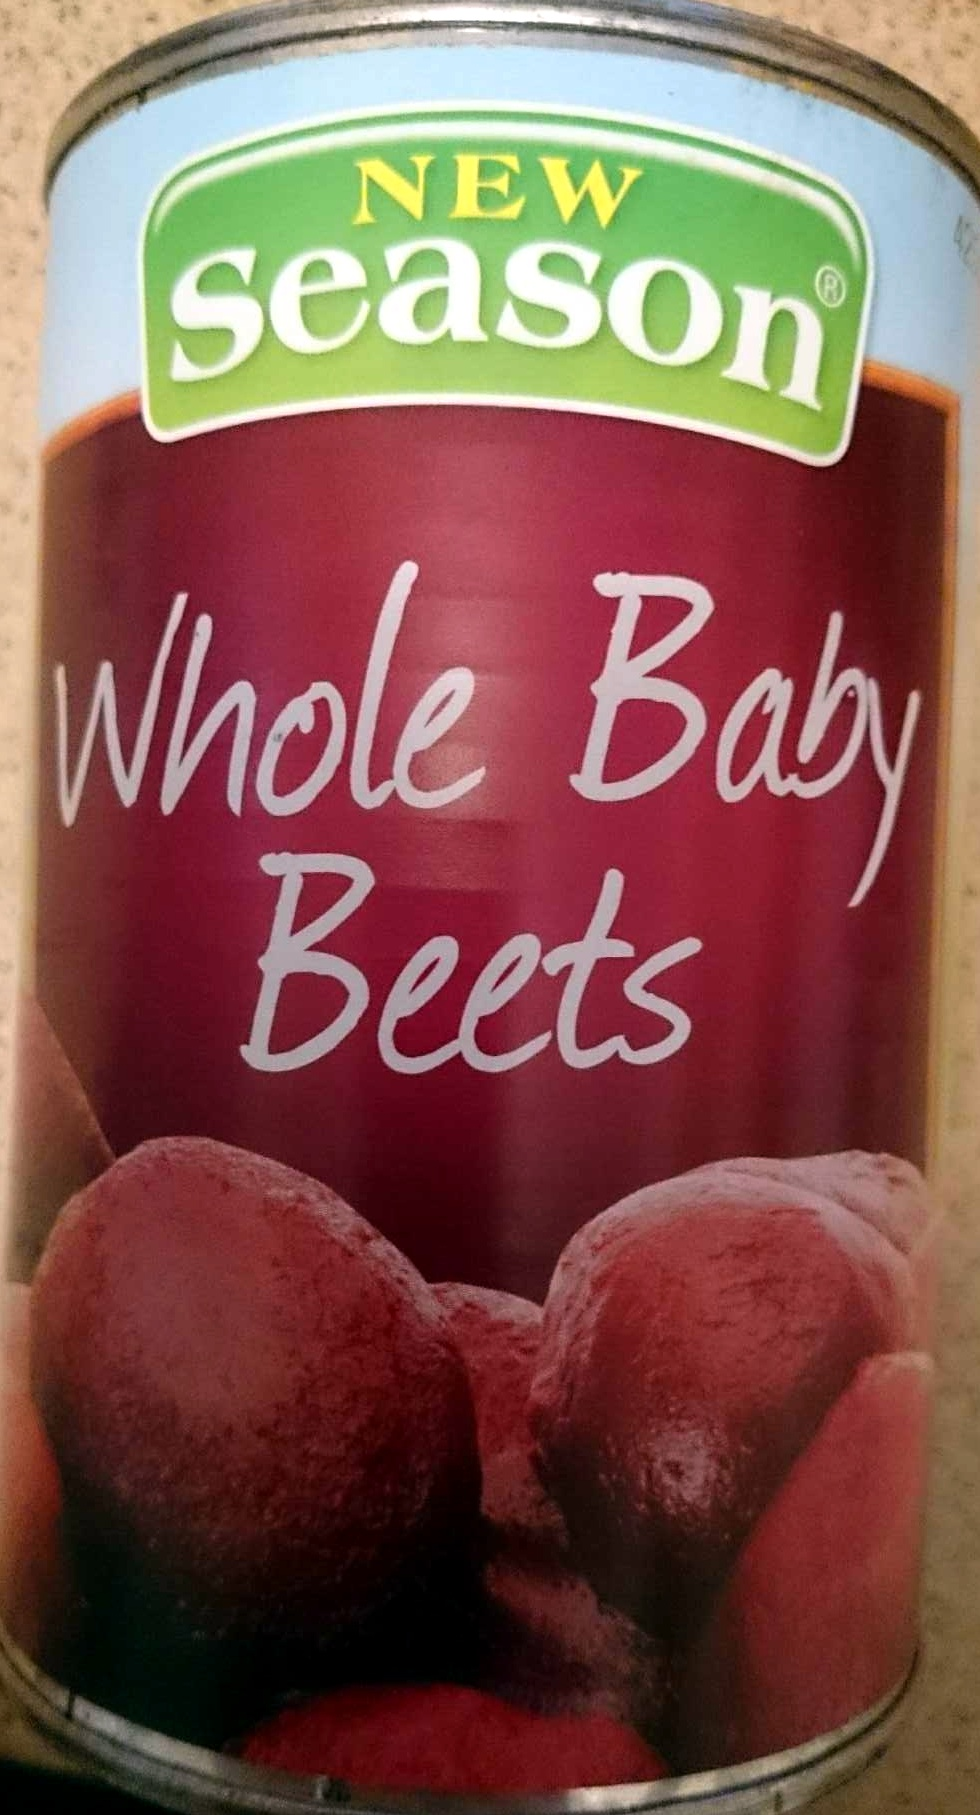 Whole Baby Beets - Product